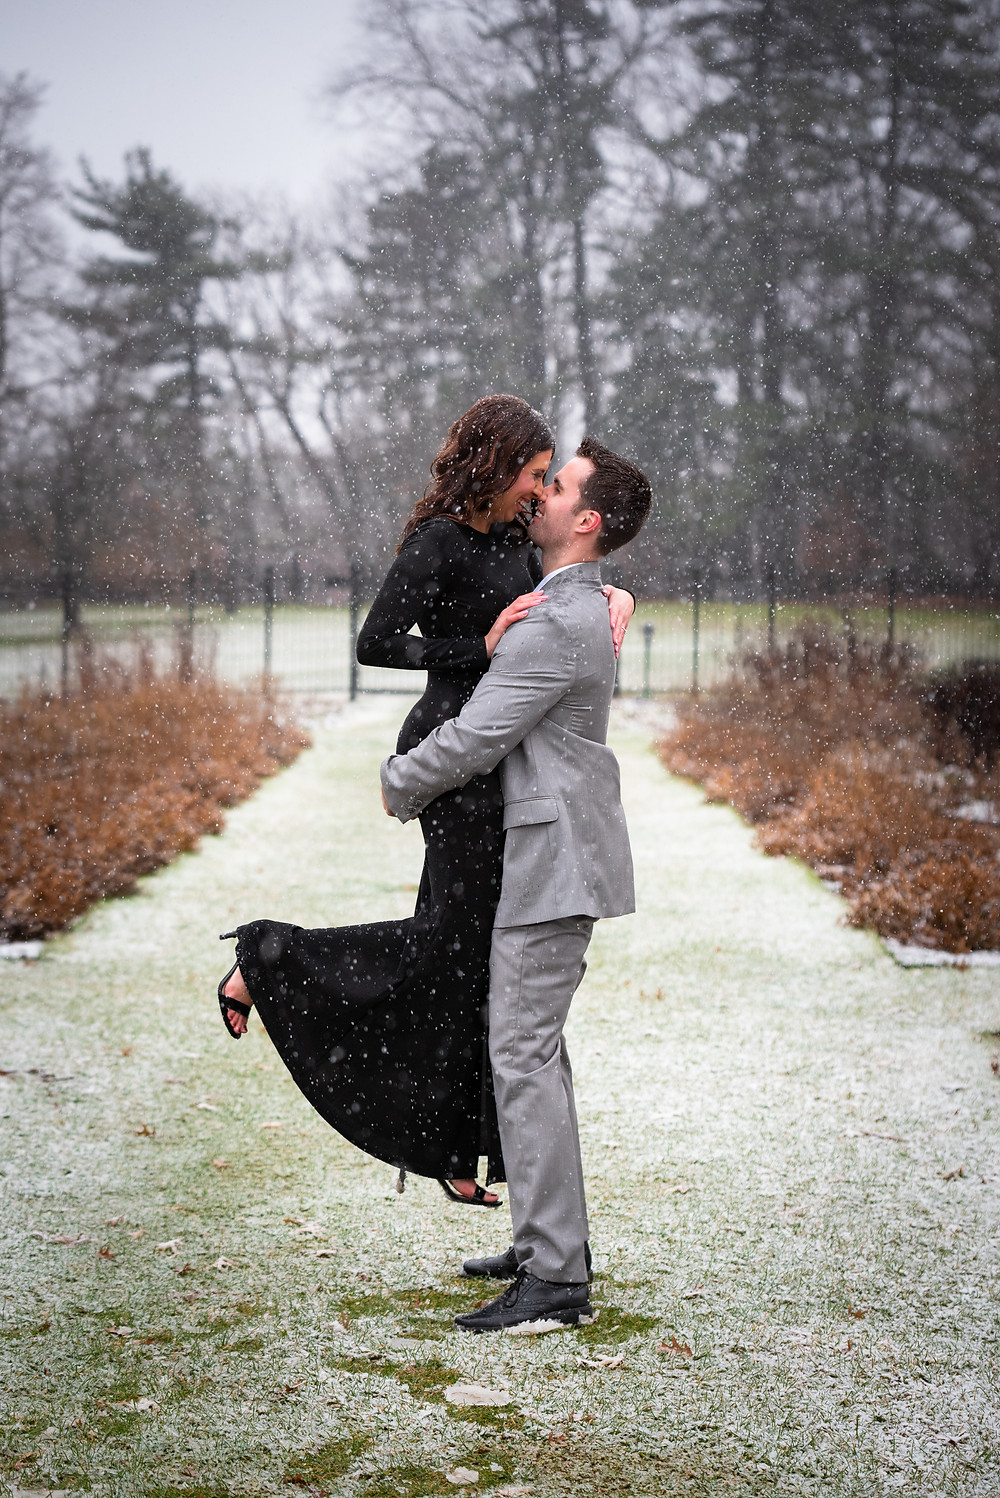 Guy holding his fiance in the snow during their winter engagement session